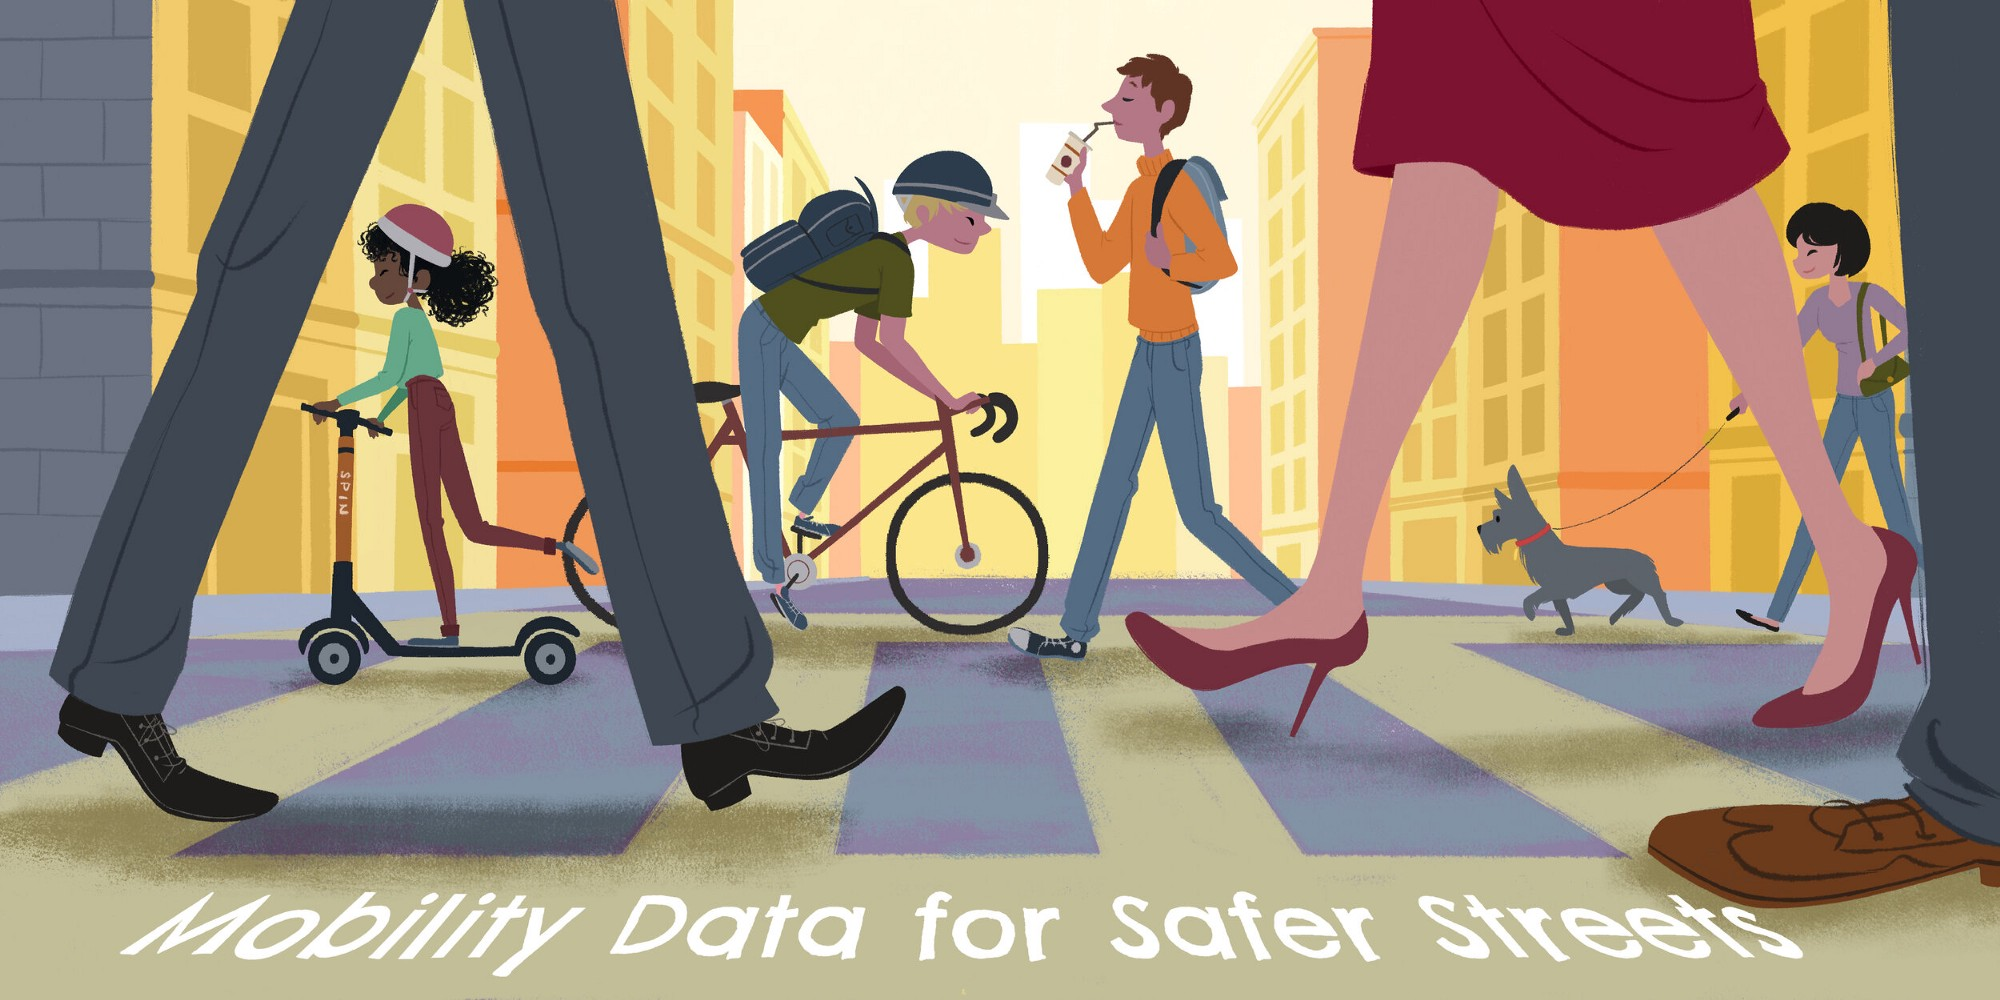 """Illustration of a crosswalk with pedestrians, bicyclists, and people on scooters with the text """"Mobility Data for Safer Streets"""" at the bottom."""